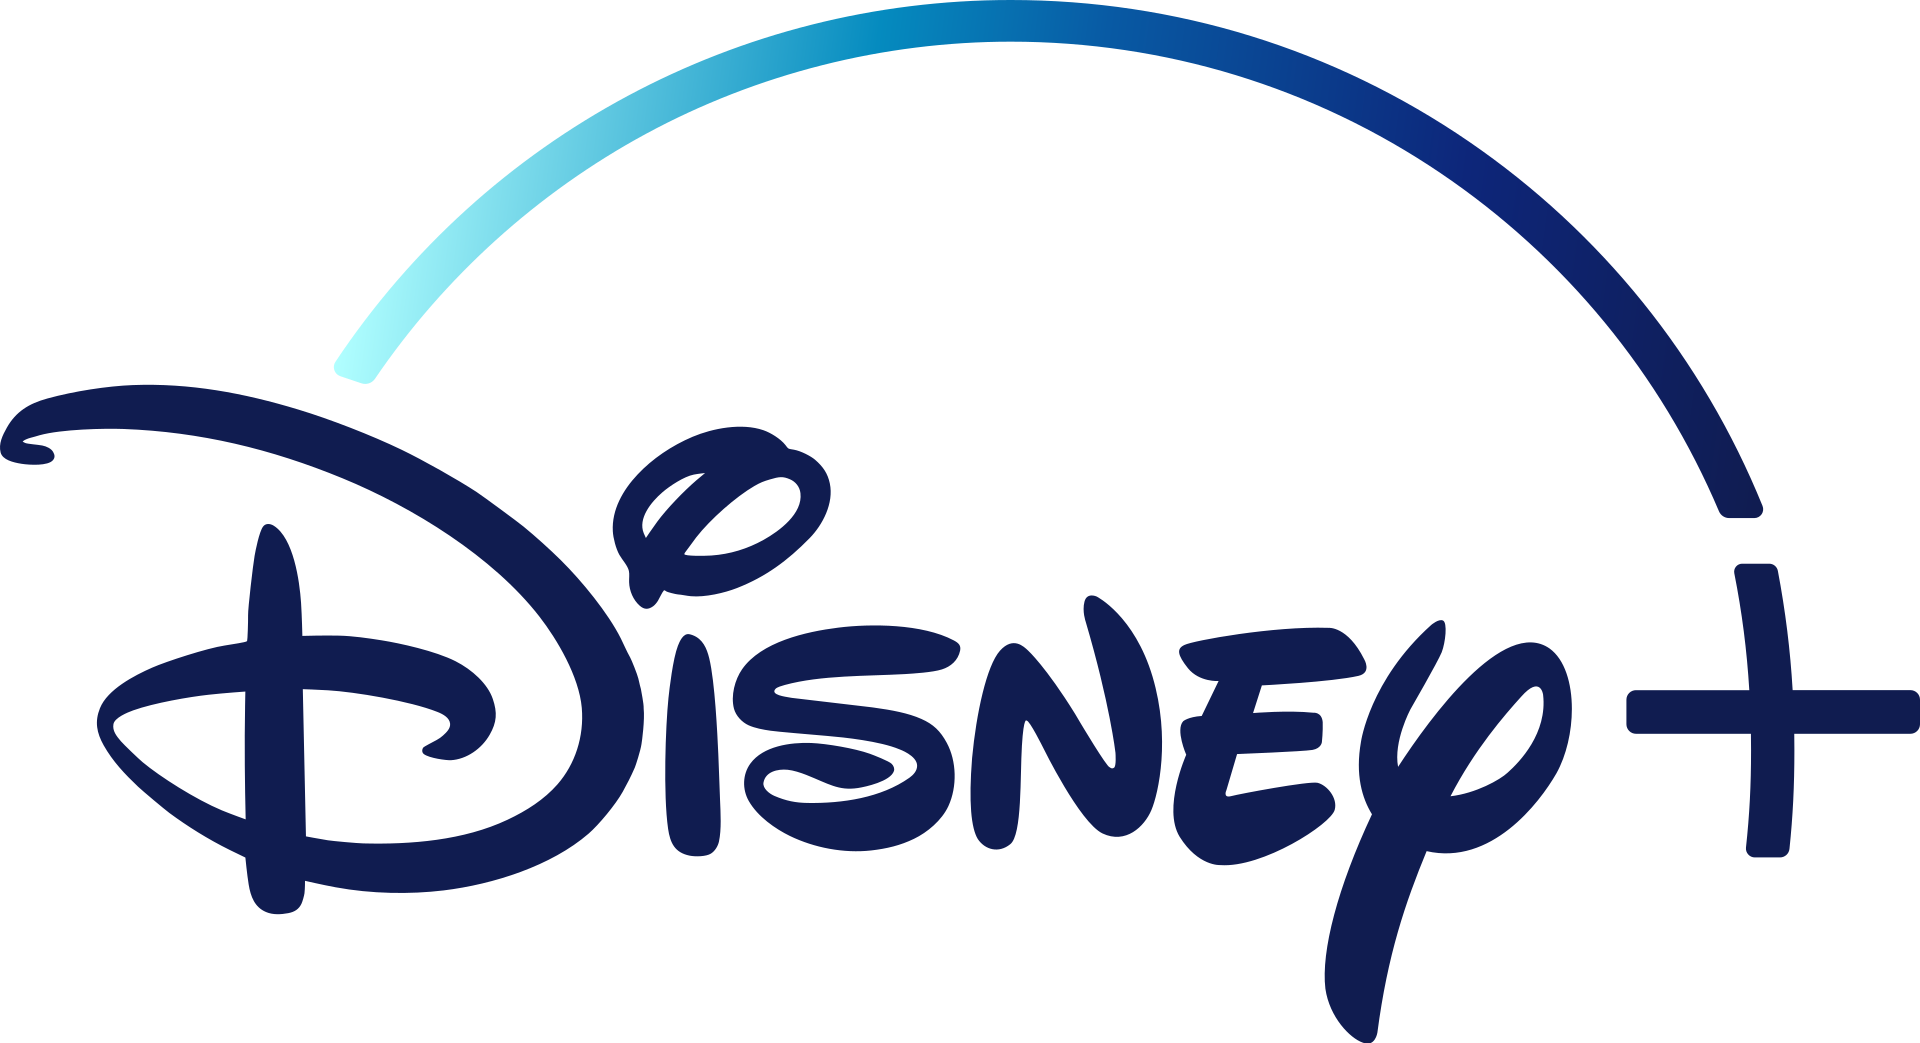 Save more than 20% on your annual or monthly Disney + subscription before February 23